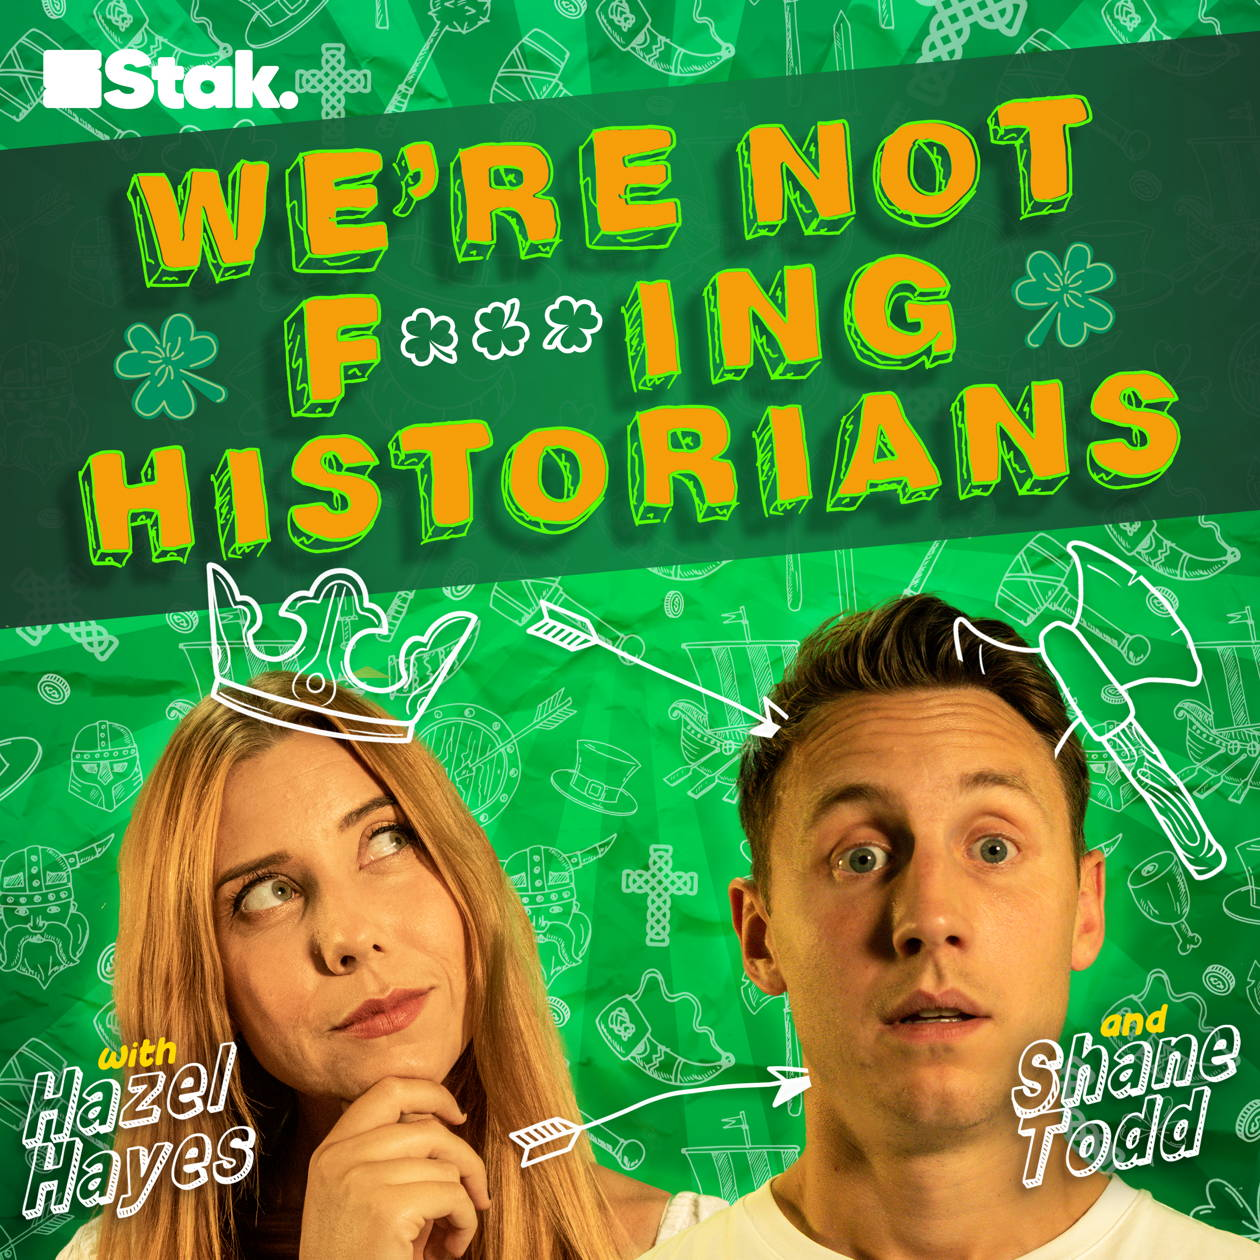 Artwork for the We're Not F***ing Historians podcast.